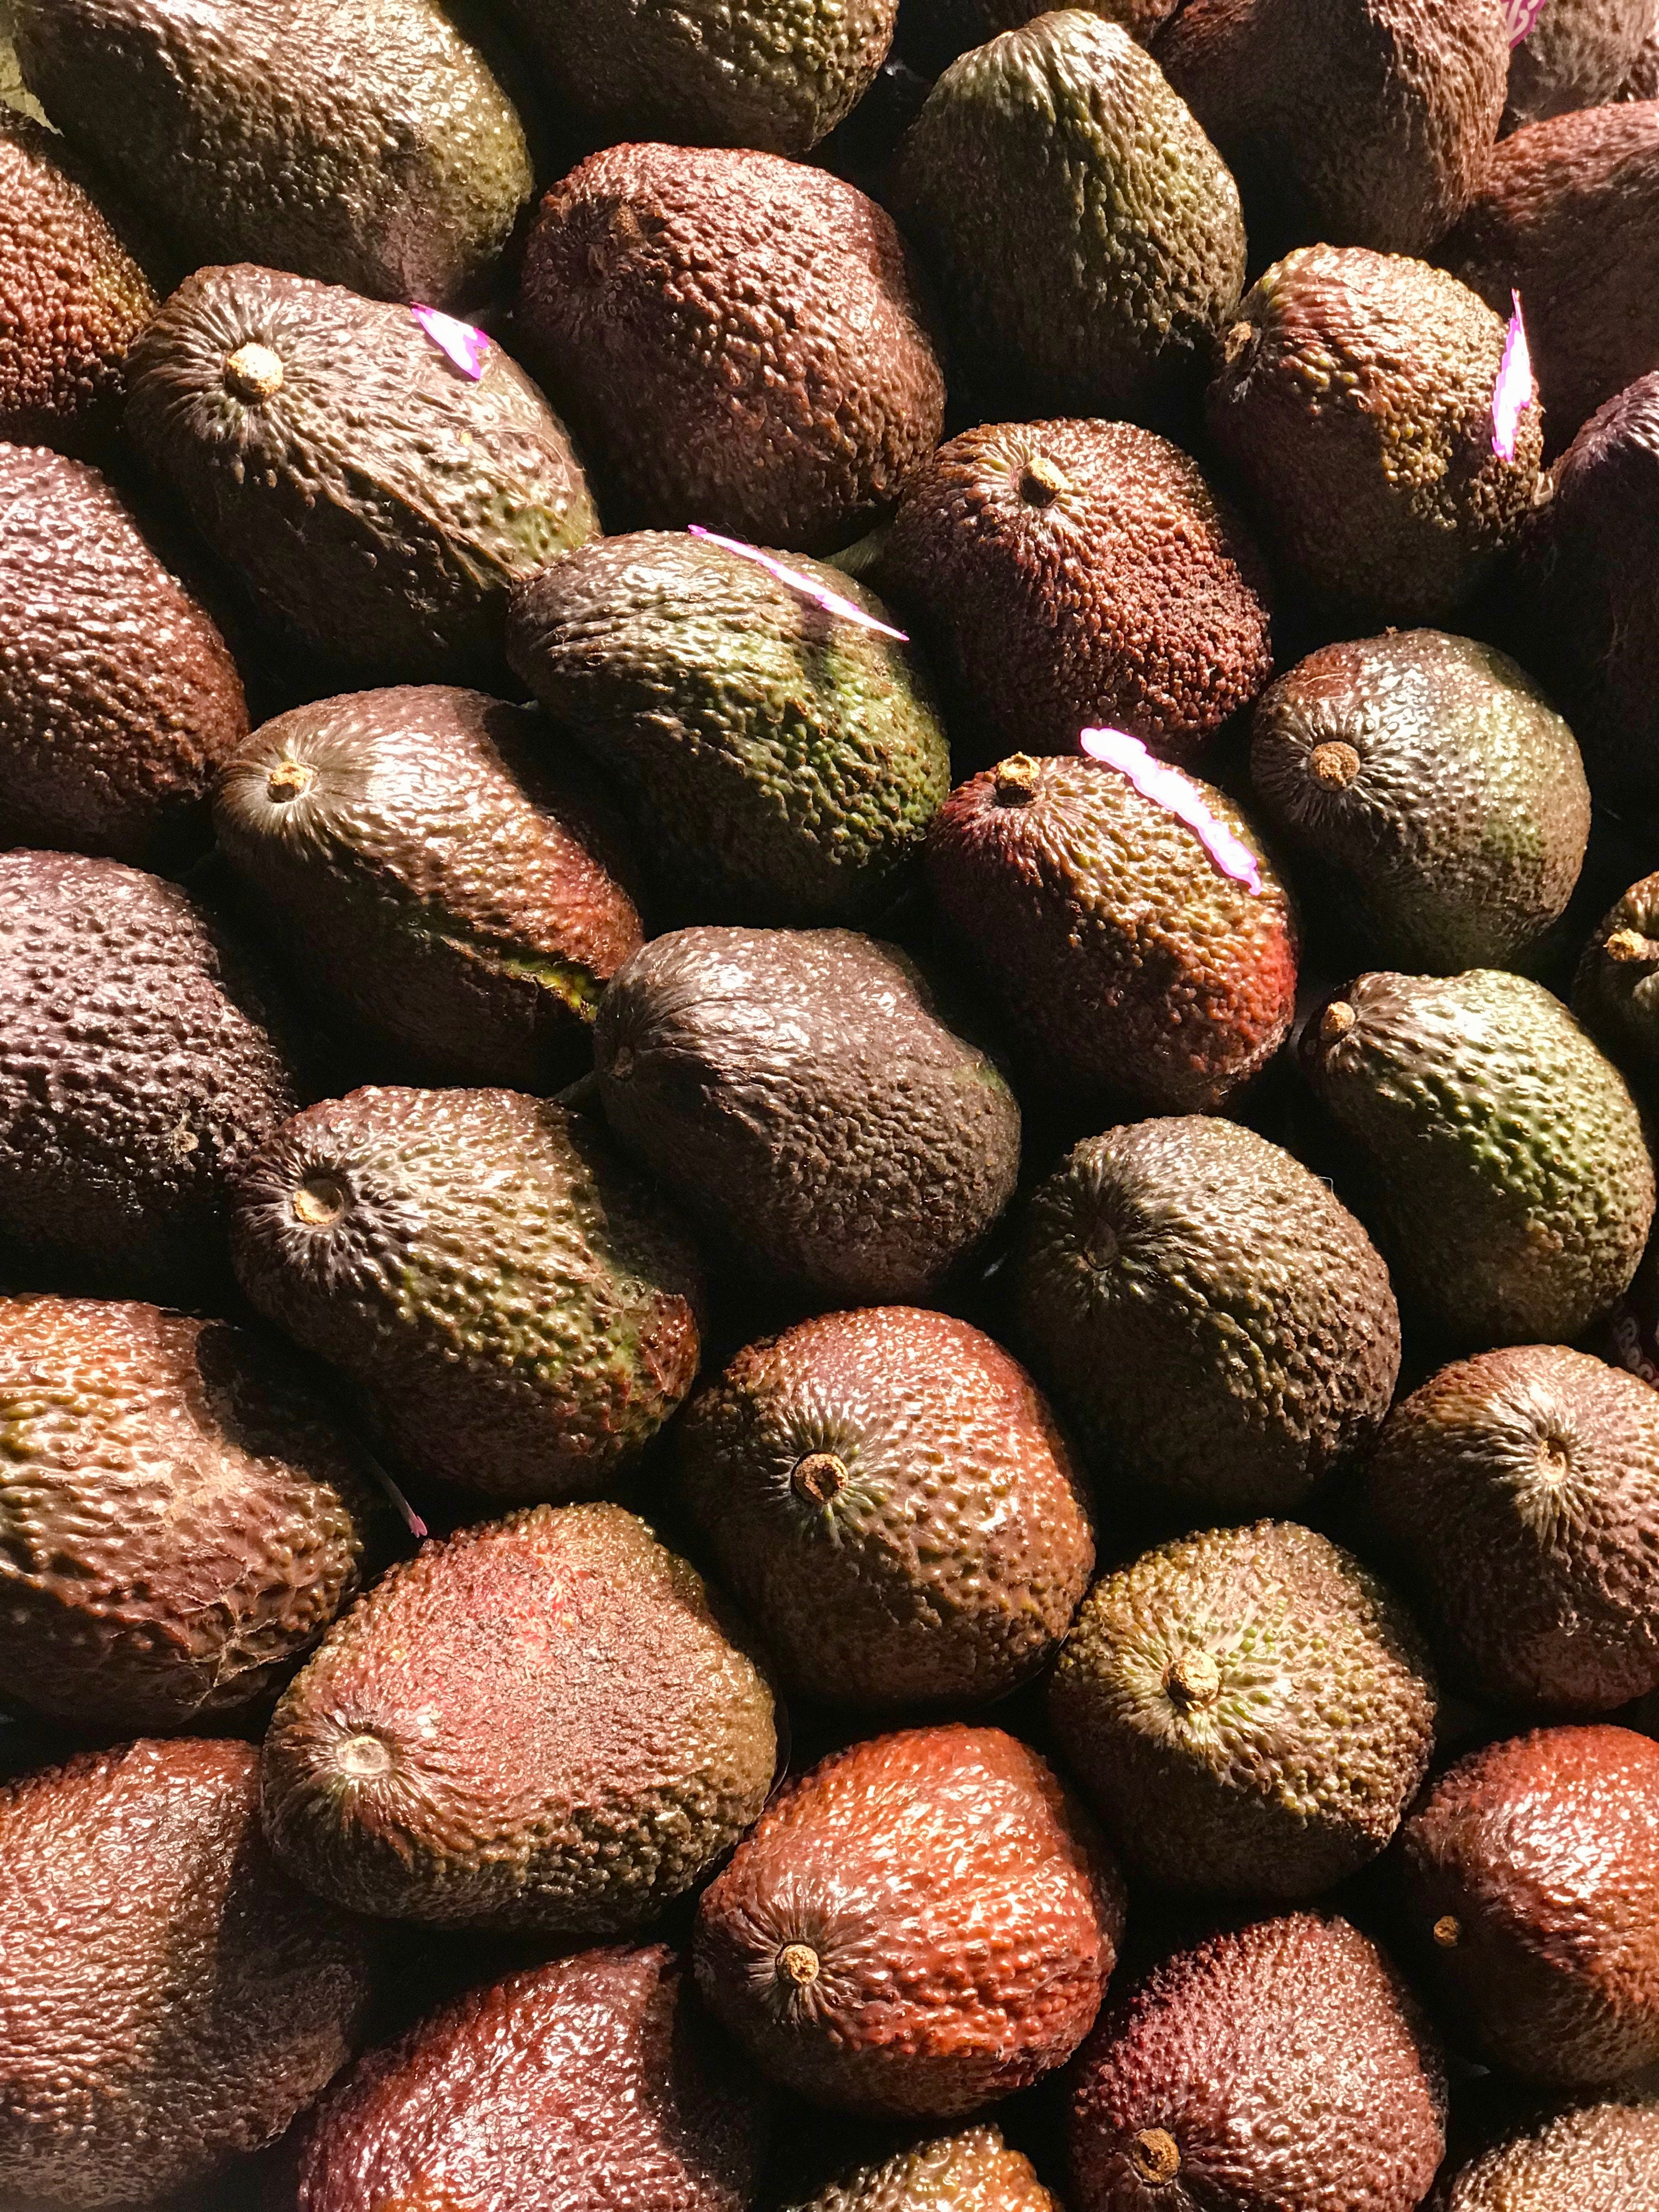 Lots of avocados from above